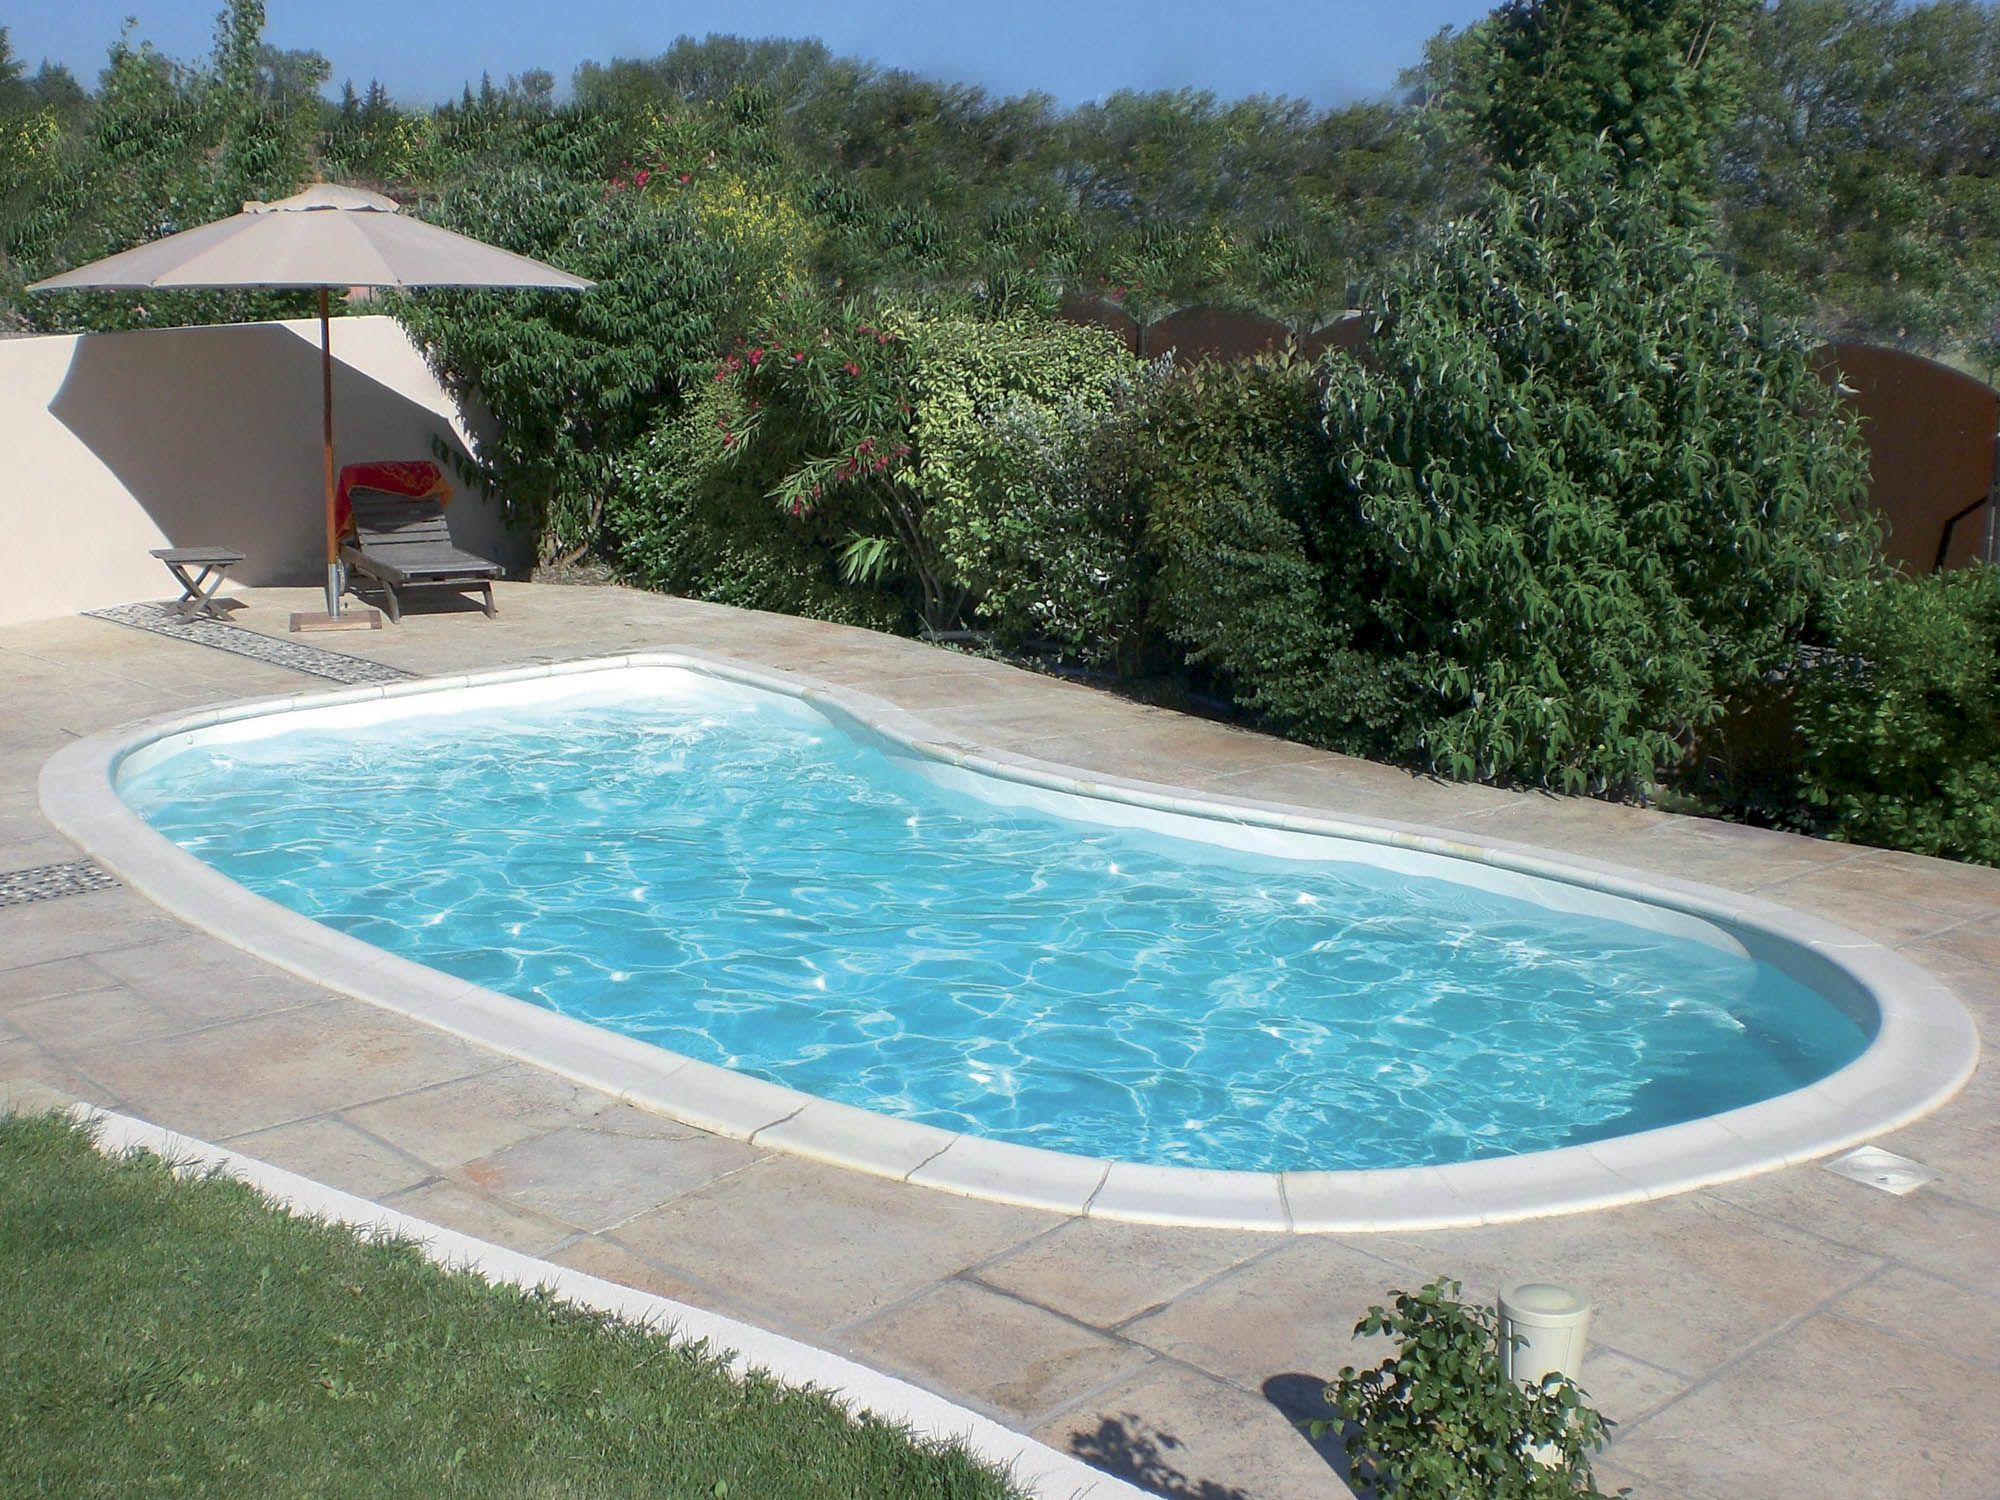 Piscine coque polyester ovation piscine haricot for Piscine haricot